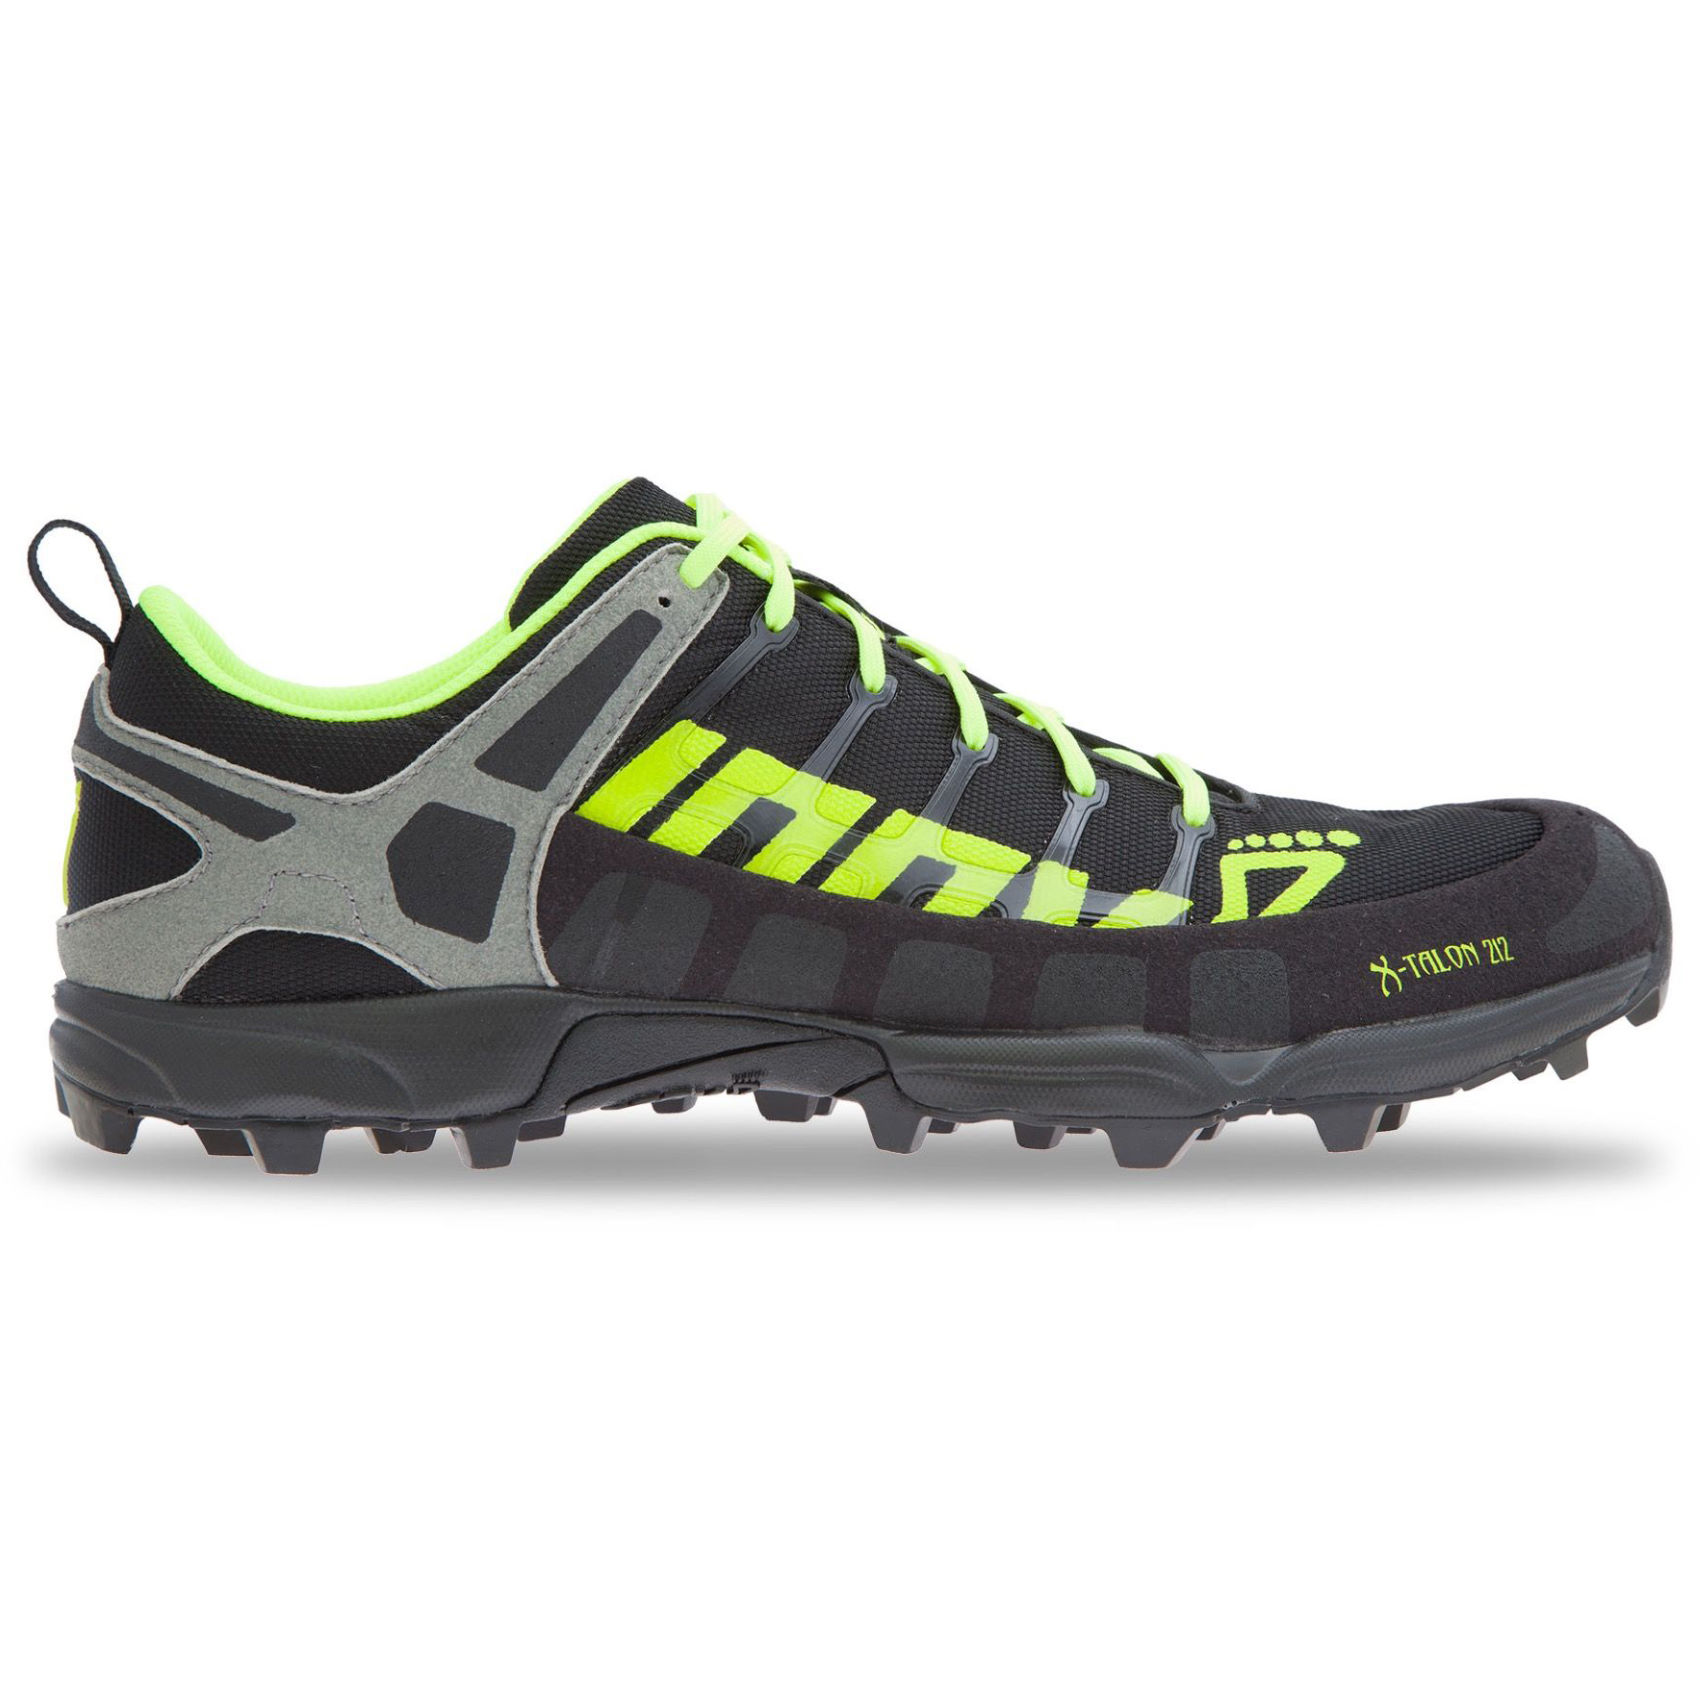 Crossfit Trail Running Shoes